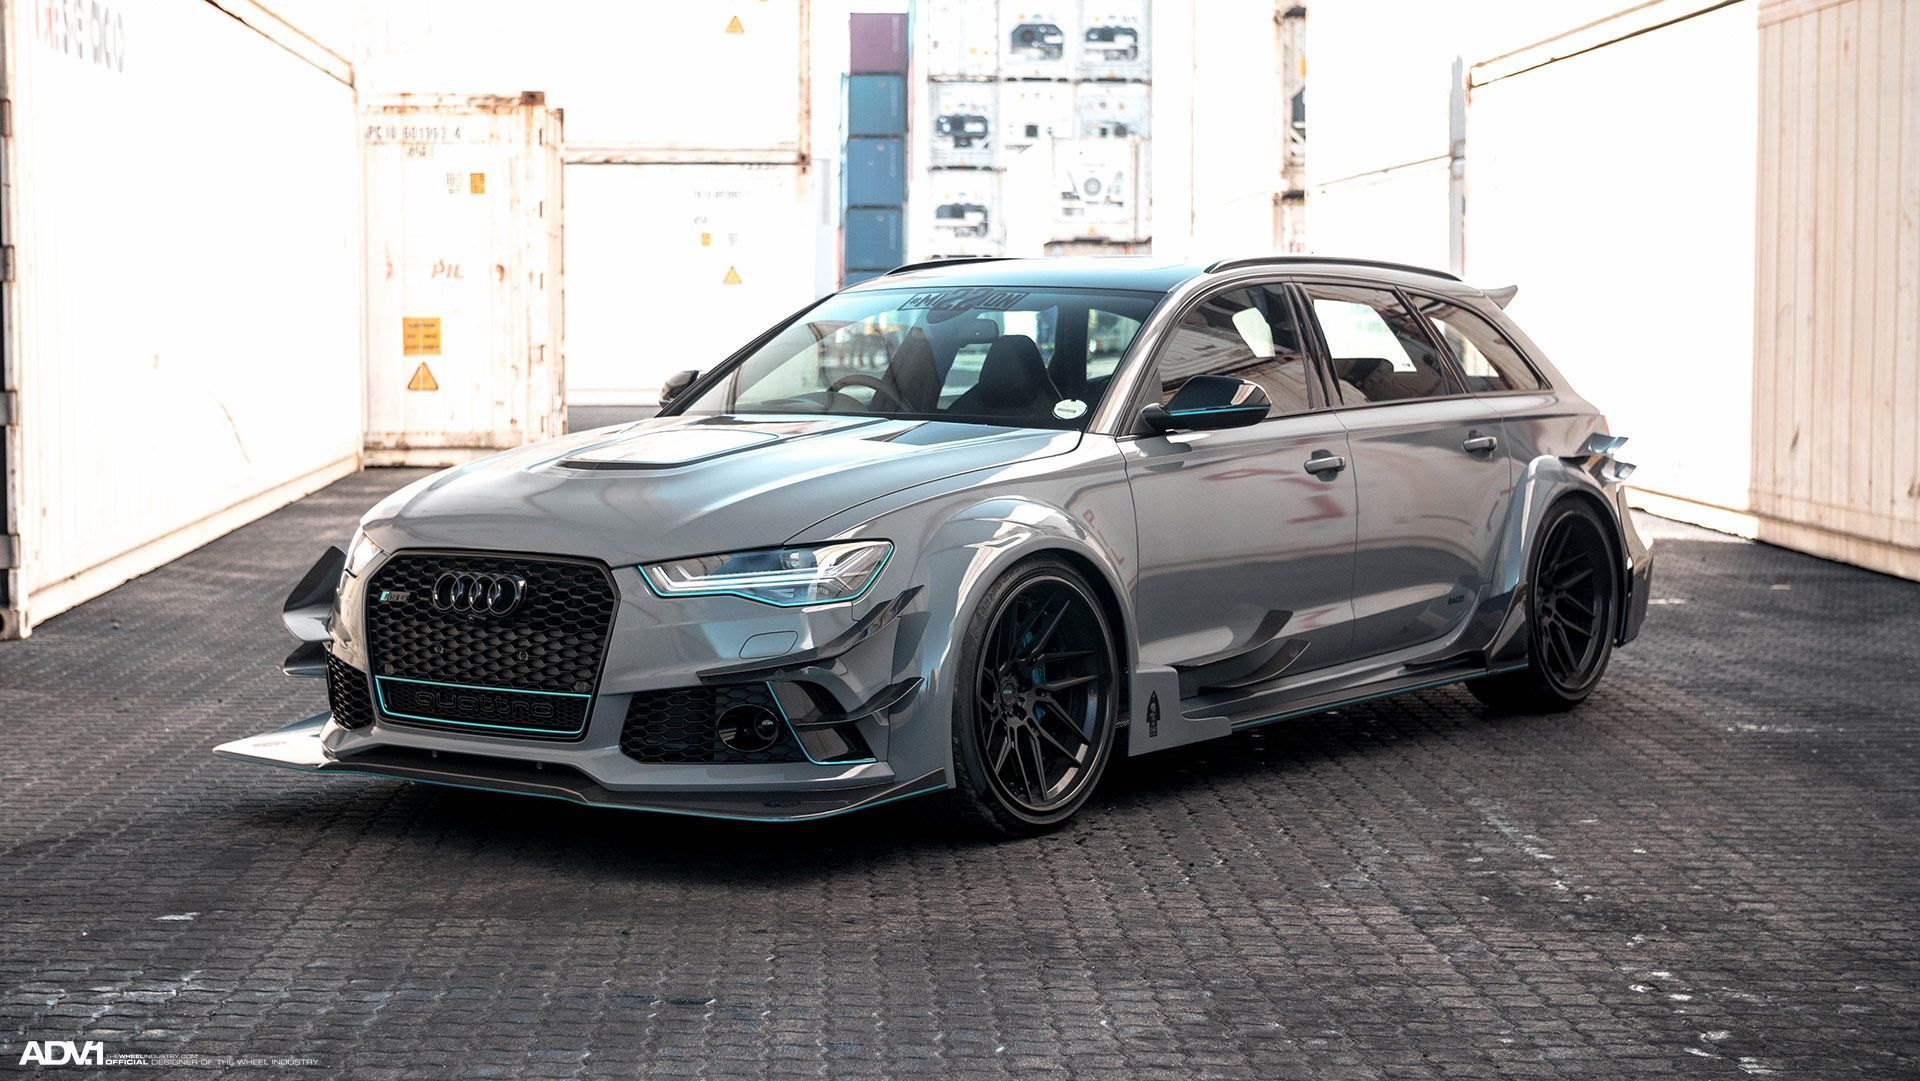 Widebody Audi Rs6 From South Africa Wants To Be A Dtm Racer Carscoops Audi Rs6 Audi Rs Audi